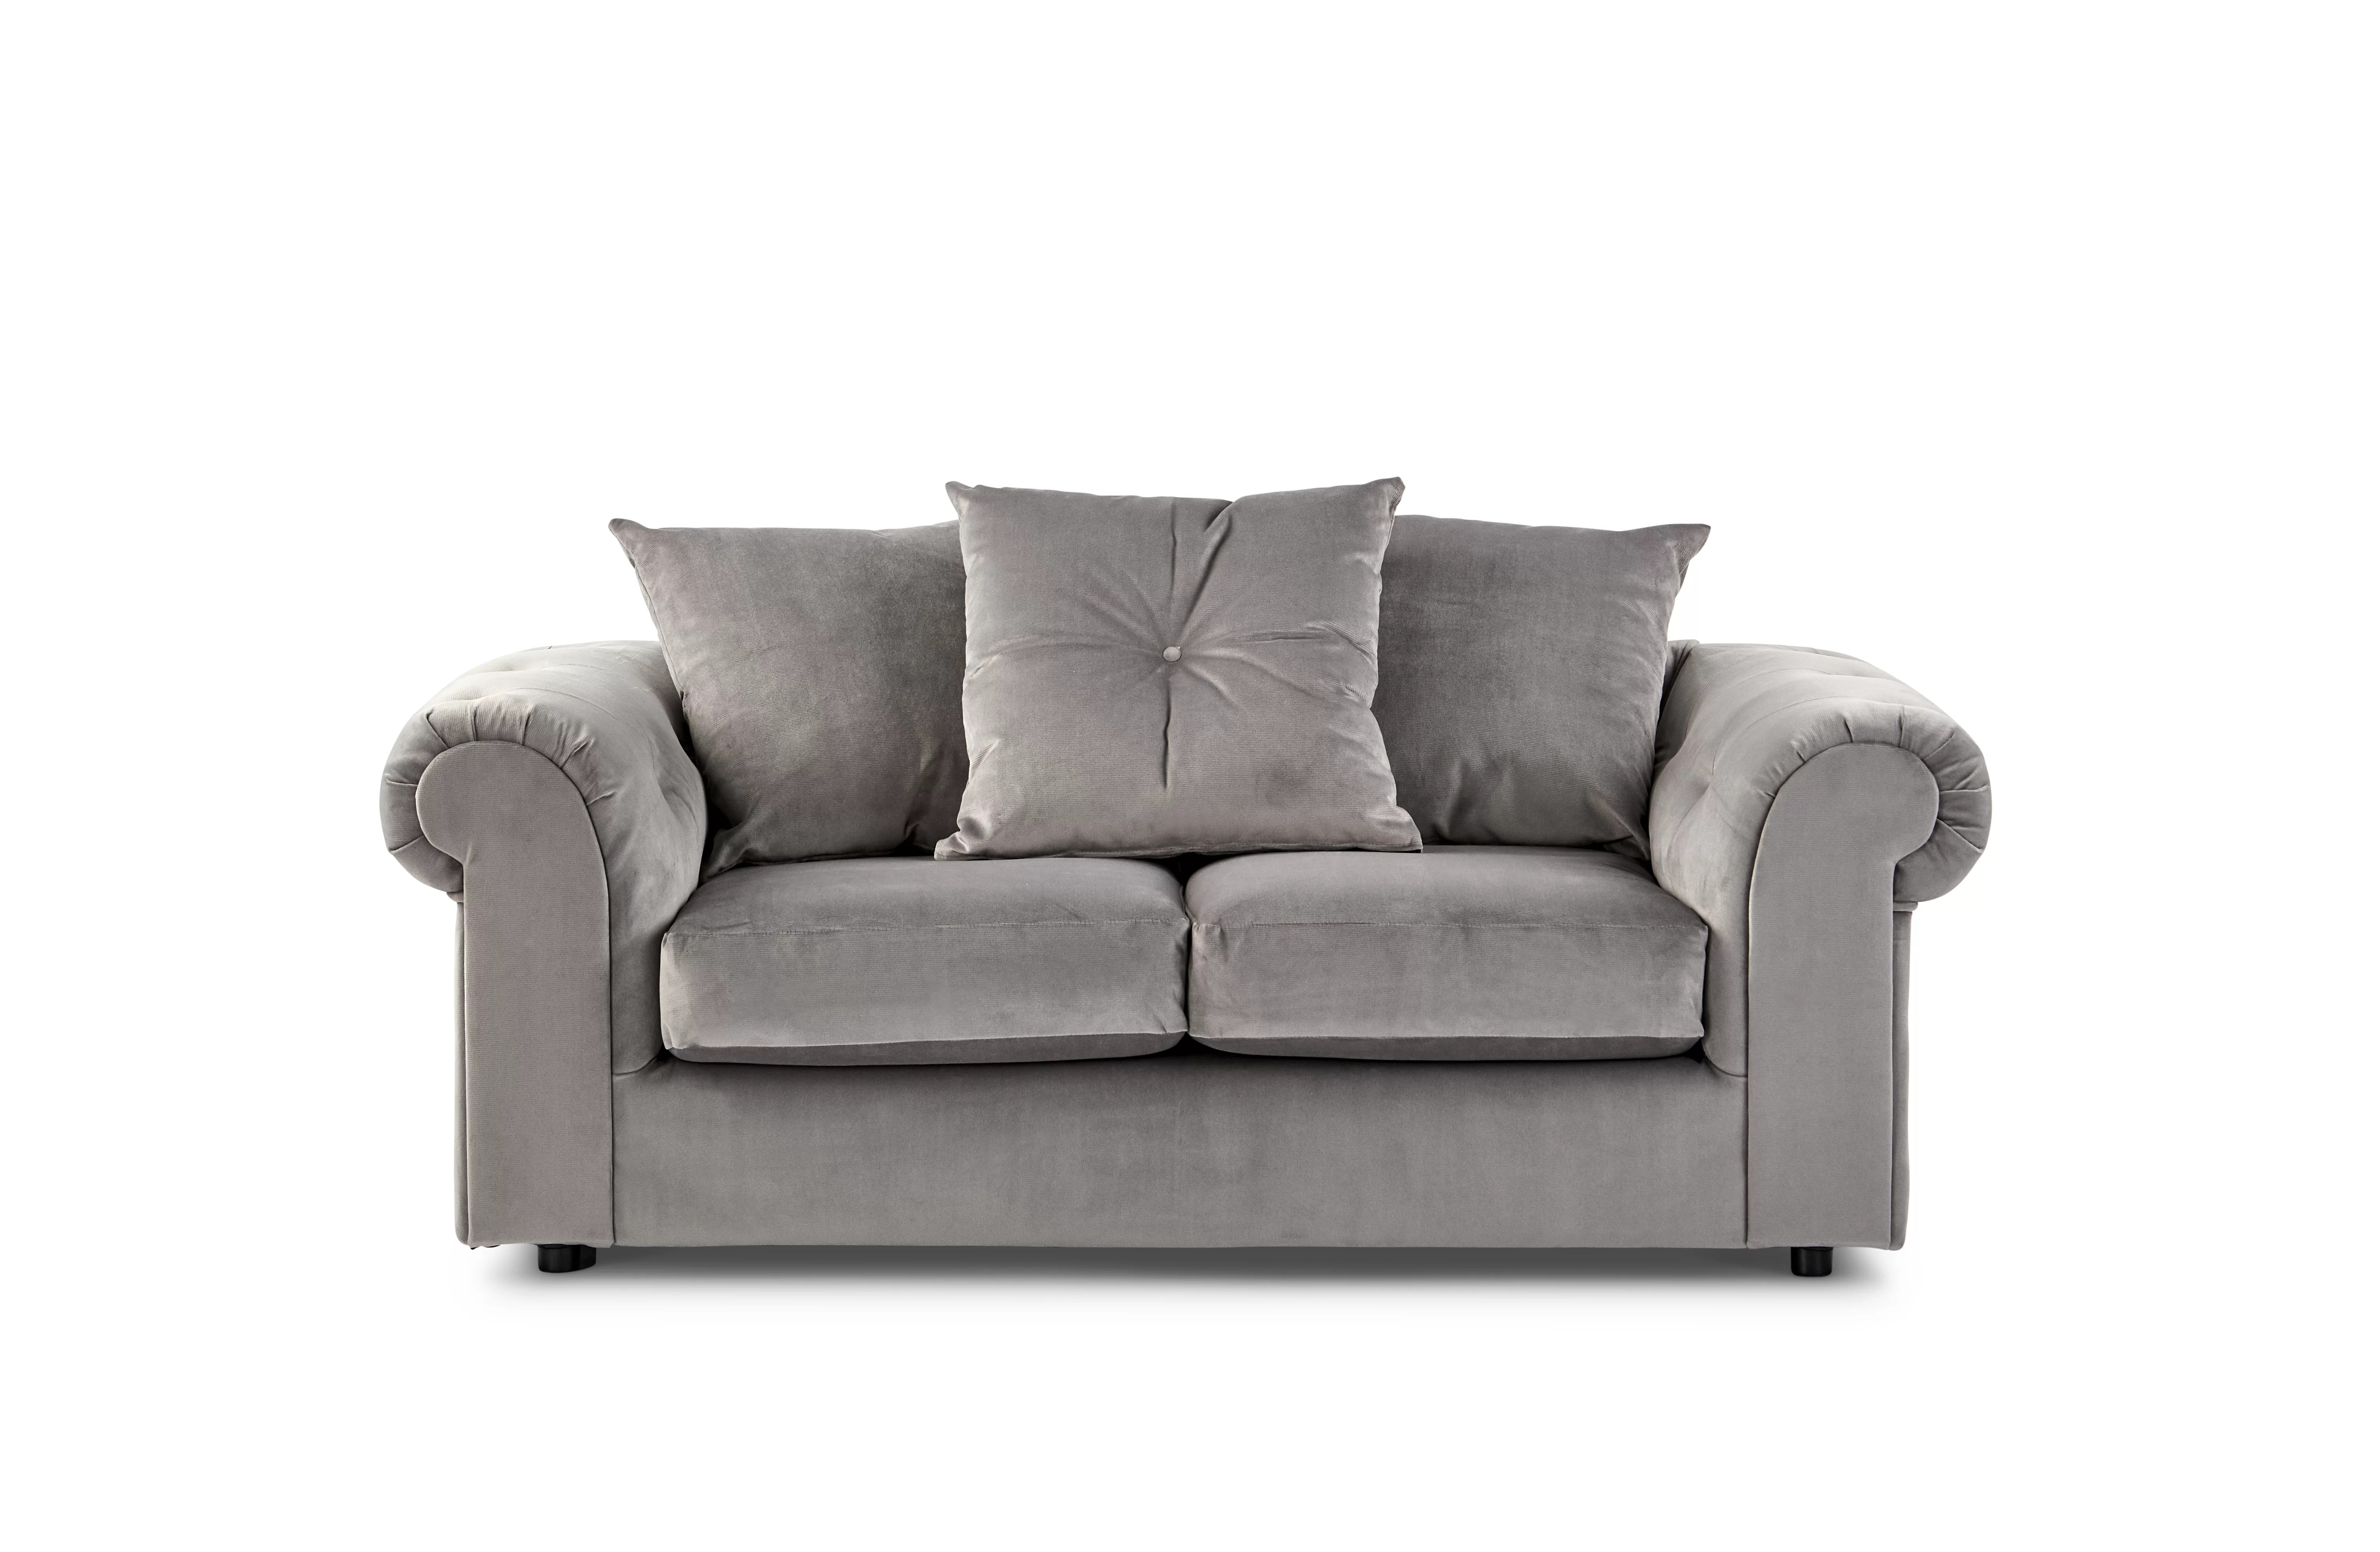 Three Posts Boehme 2 Seater Chesterfield Sofa Reviews Wayfair Co Uk